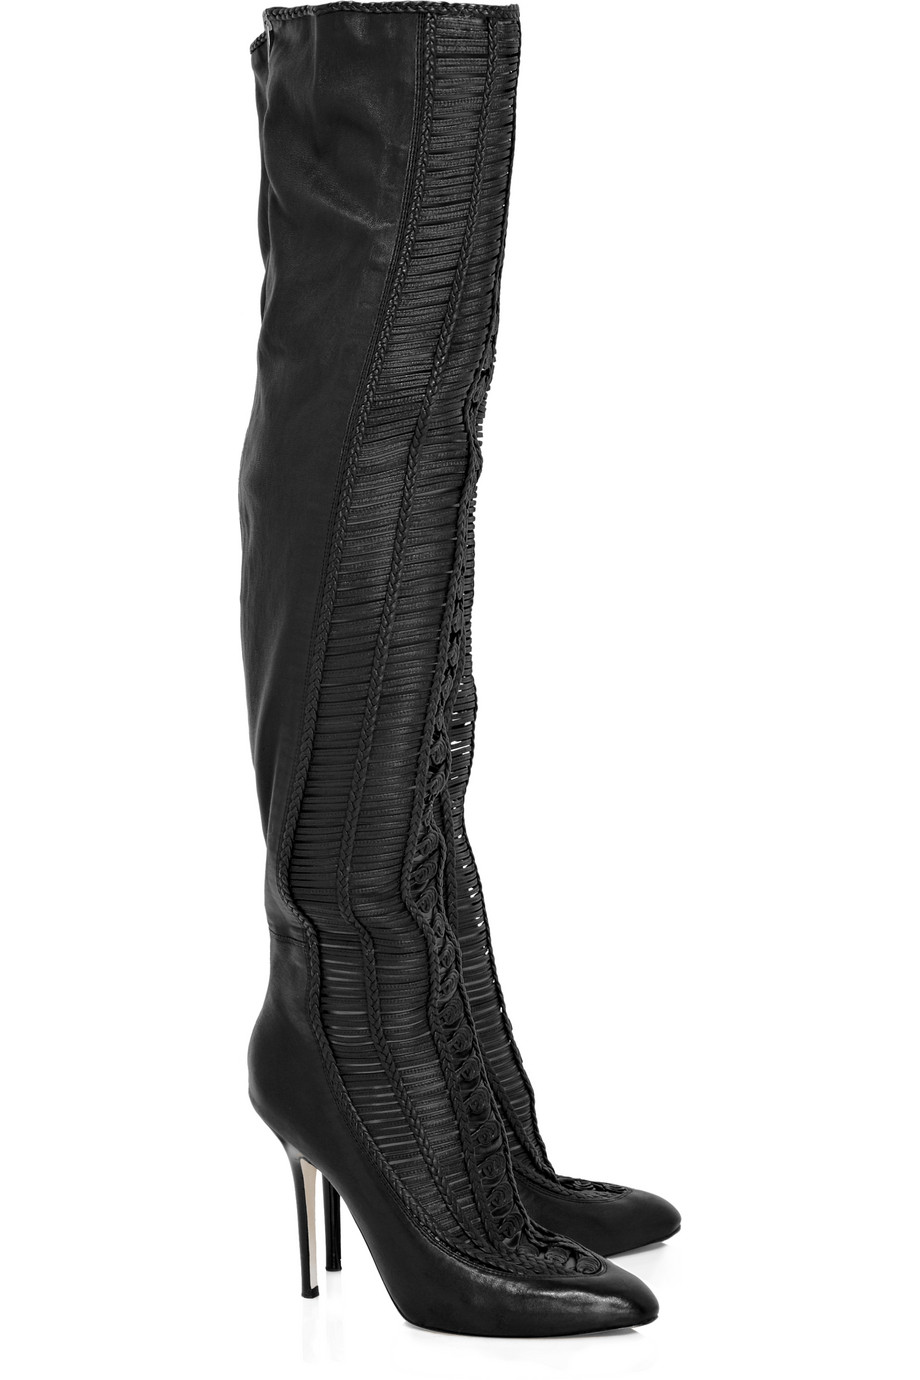 jimmy choo thigh high leather boots in black lyst